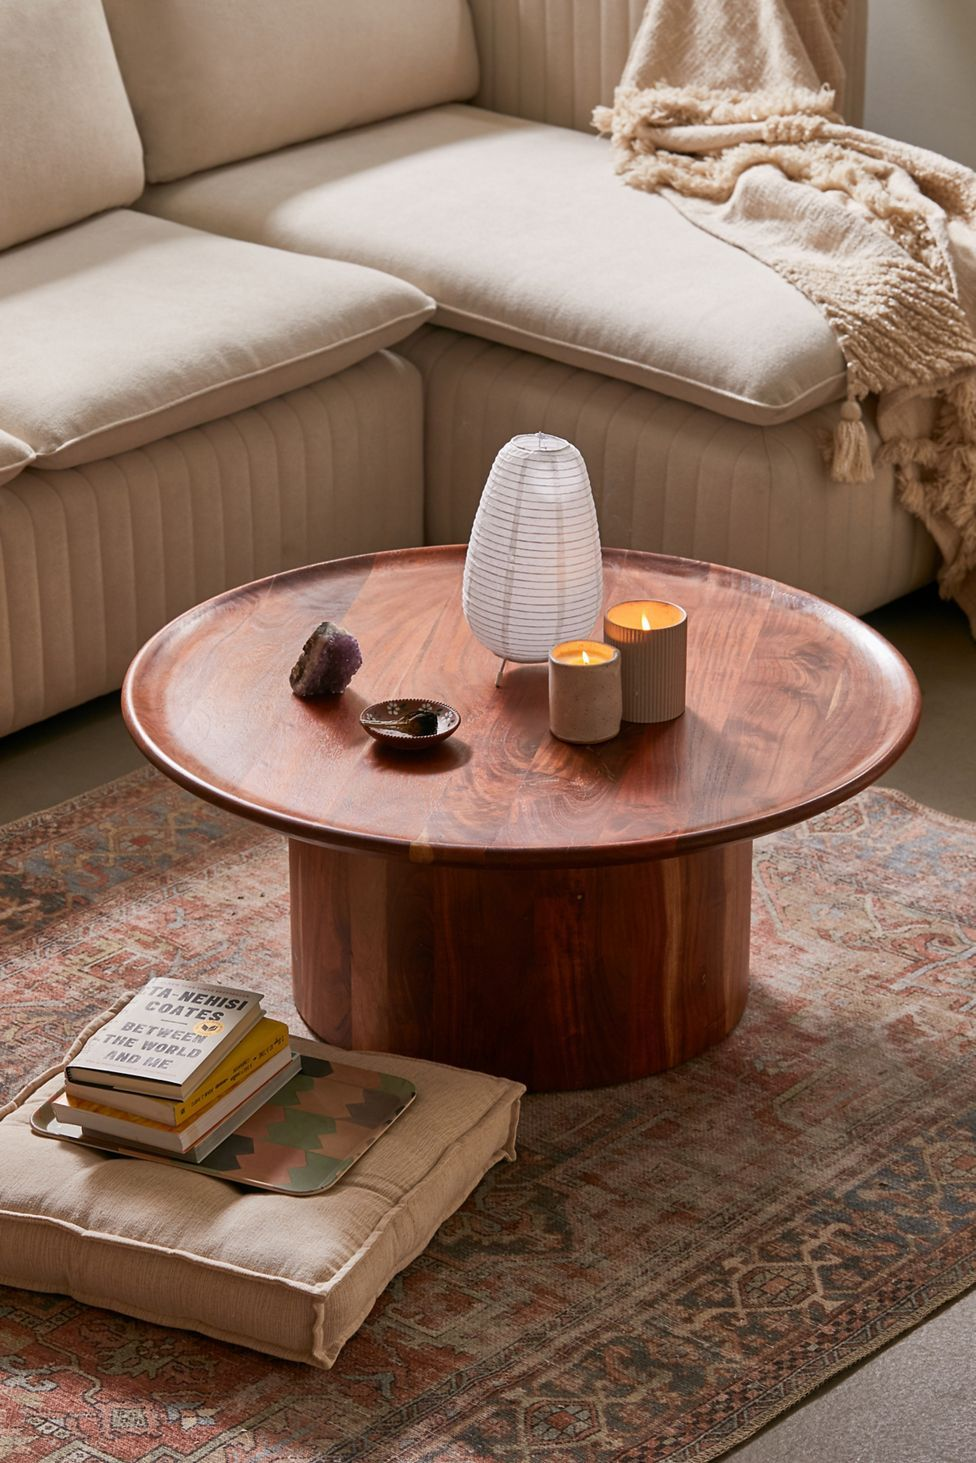 Matro Coffee Table Urban Outfitters Coffee Table Urban Outfitters Coffee Table Wood Coffee Table [ 1463 x 976 Pixel ]